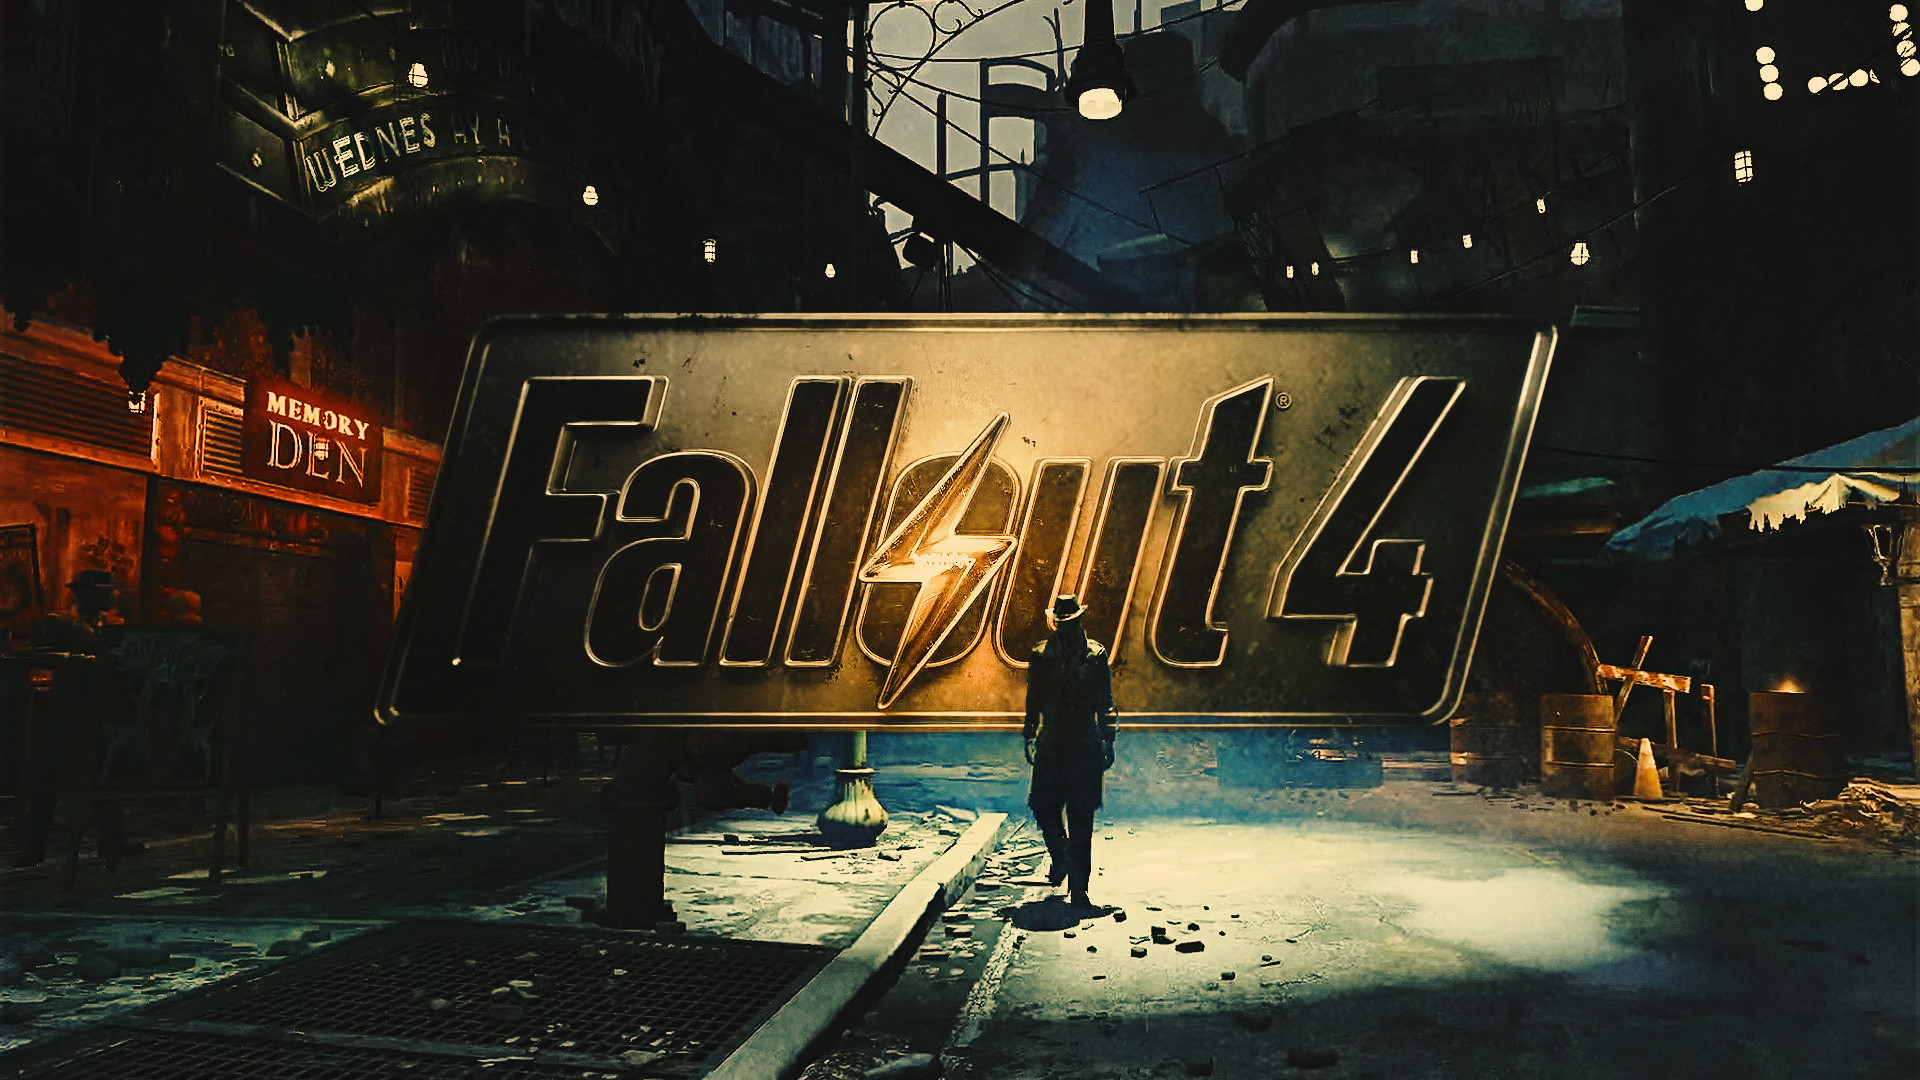 16 HD Fallout 4 Desktop Wallpapers For Free Download